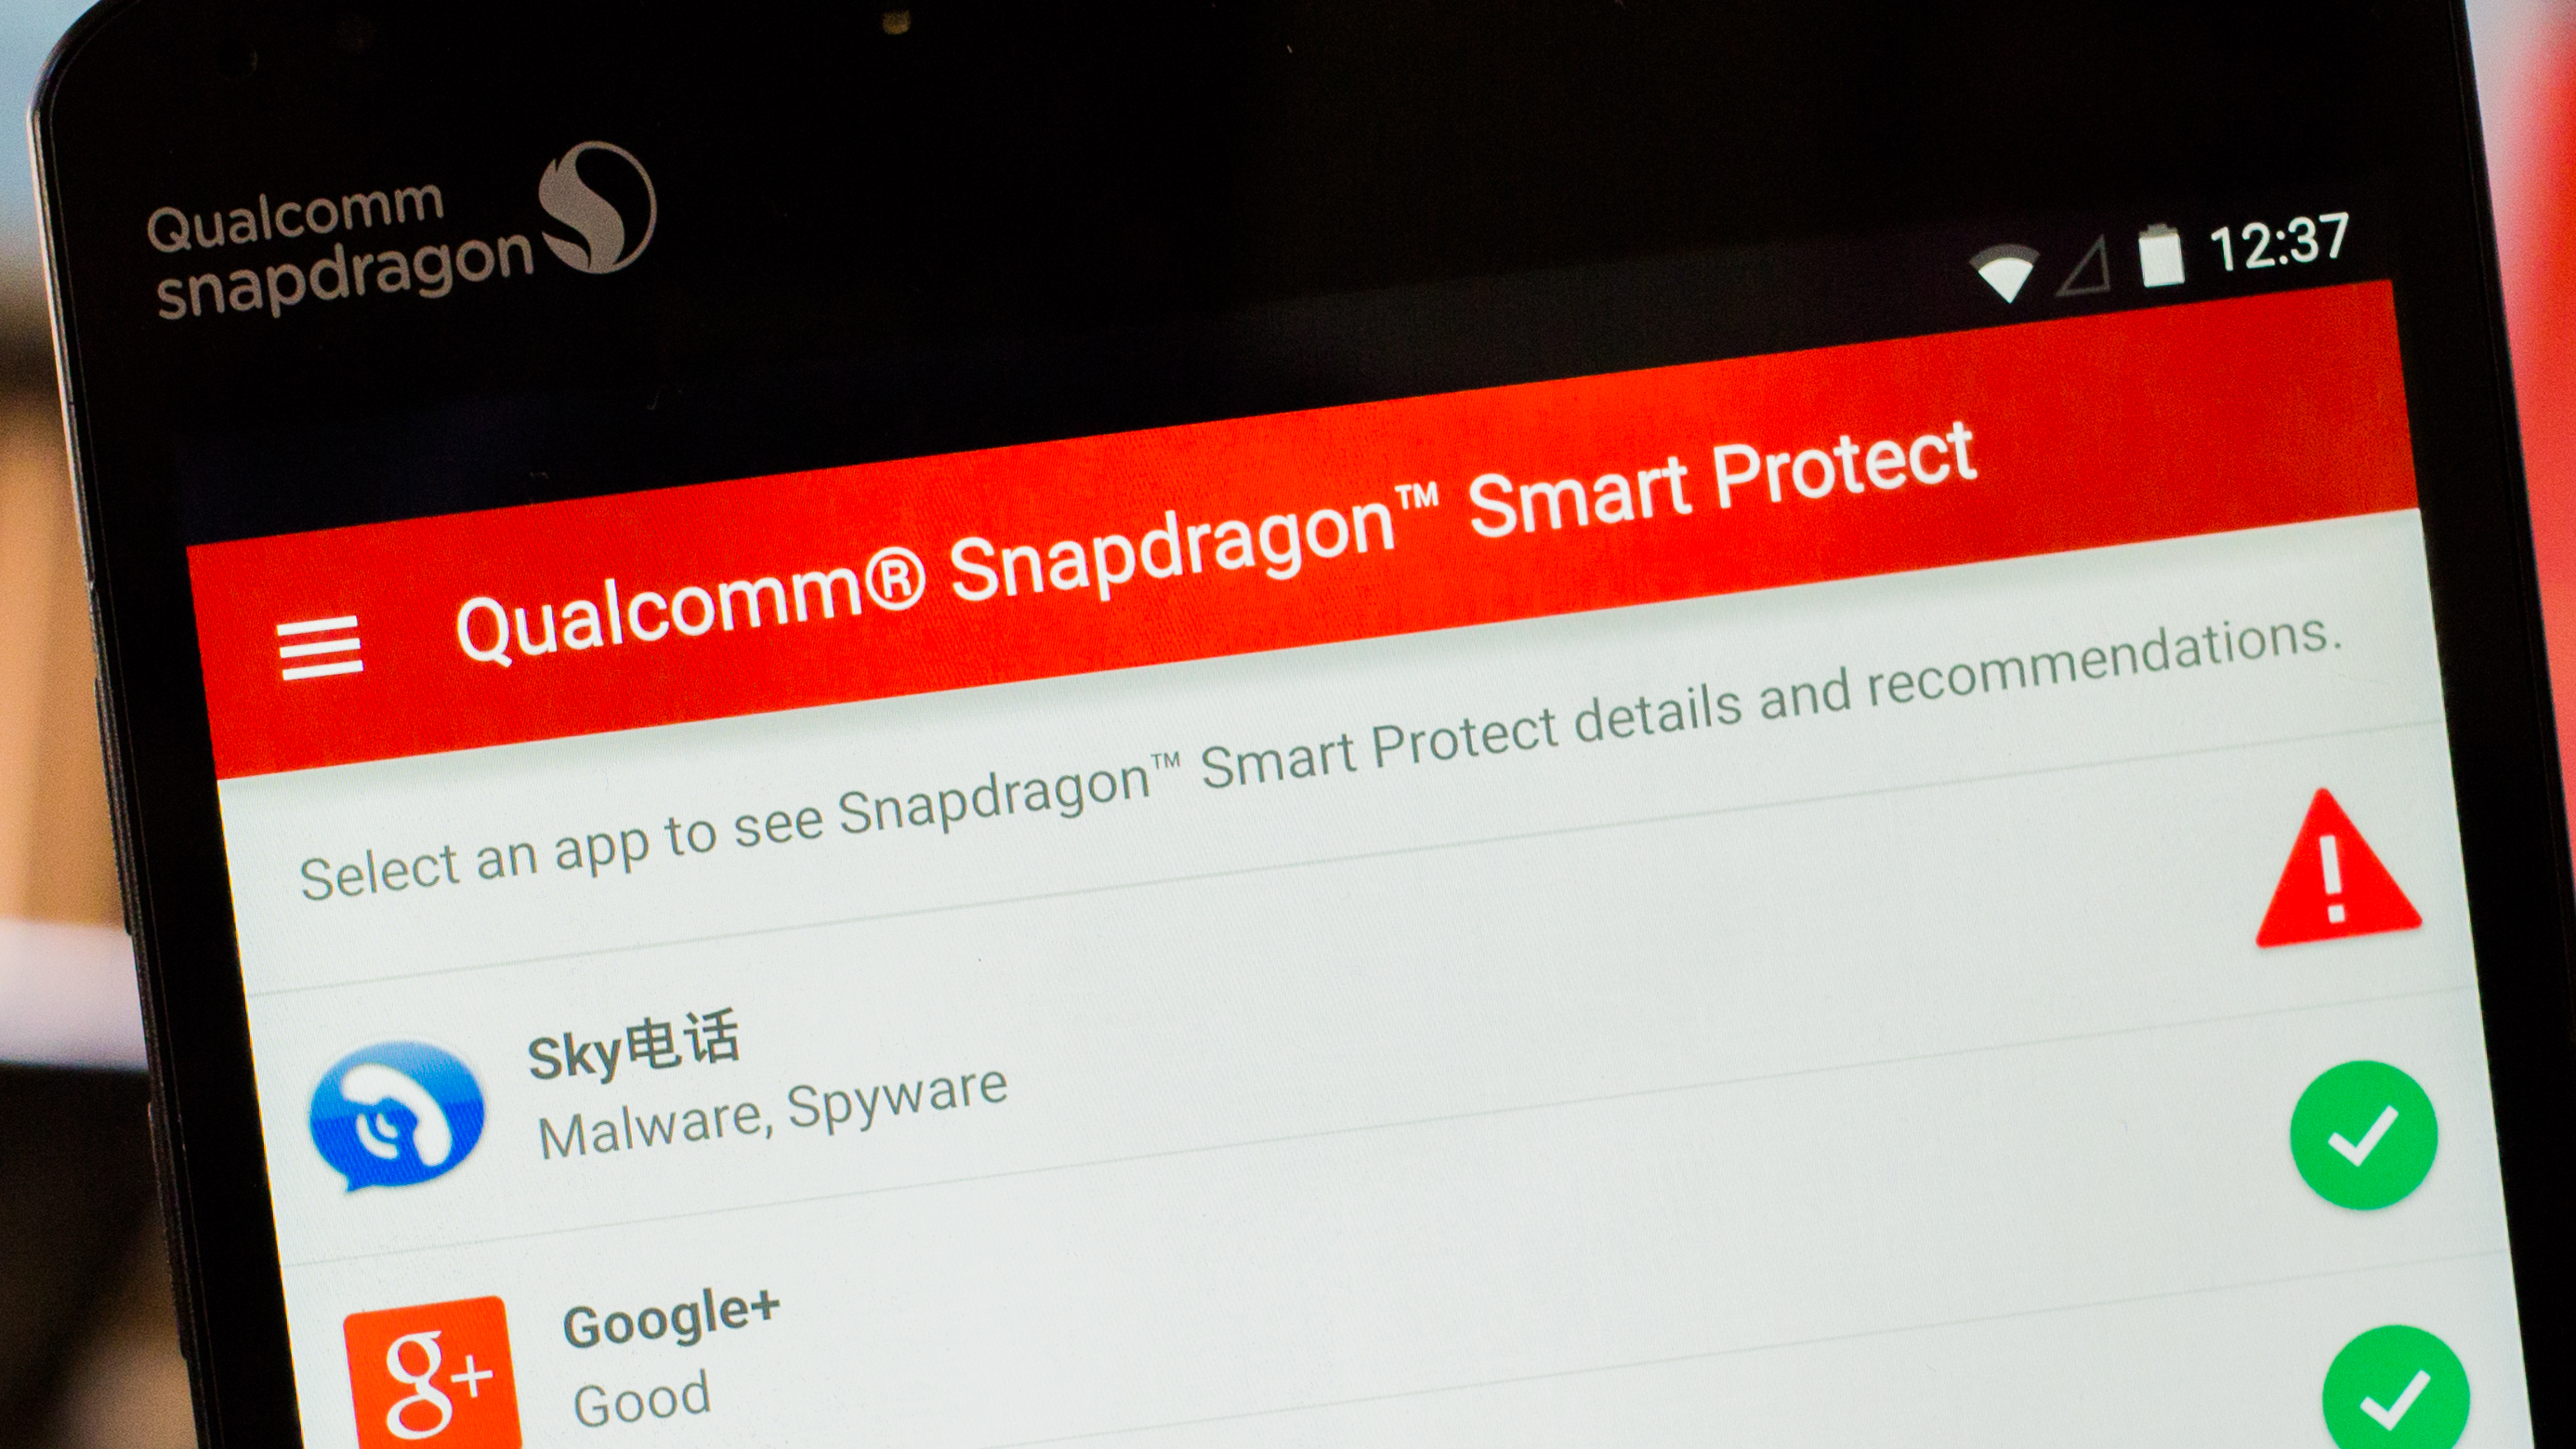 qualcomm-snapdragon-smart-protect-mobile-security-1873.jpg